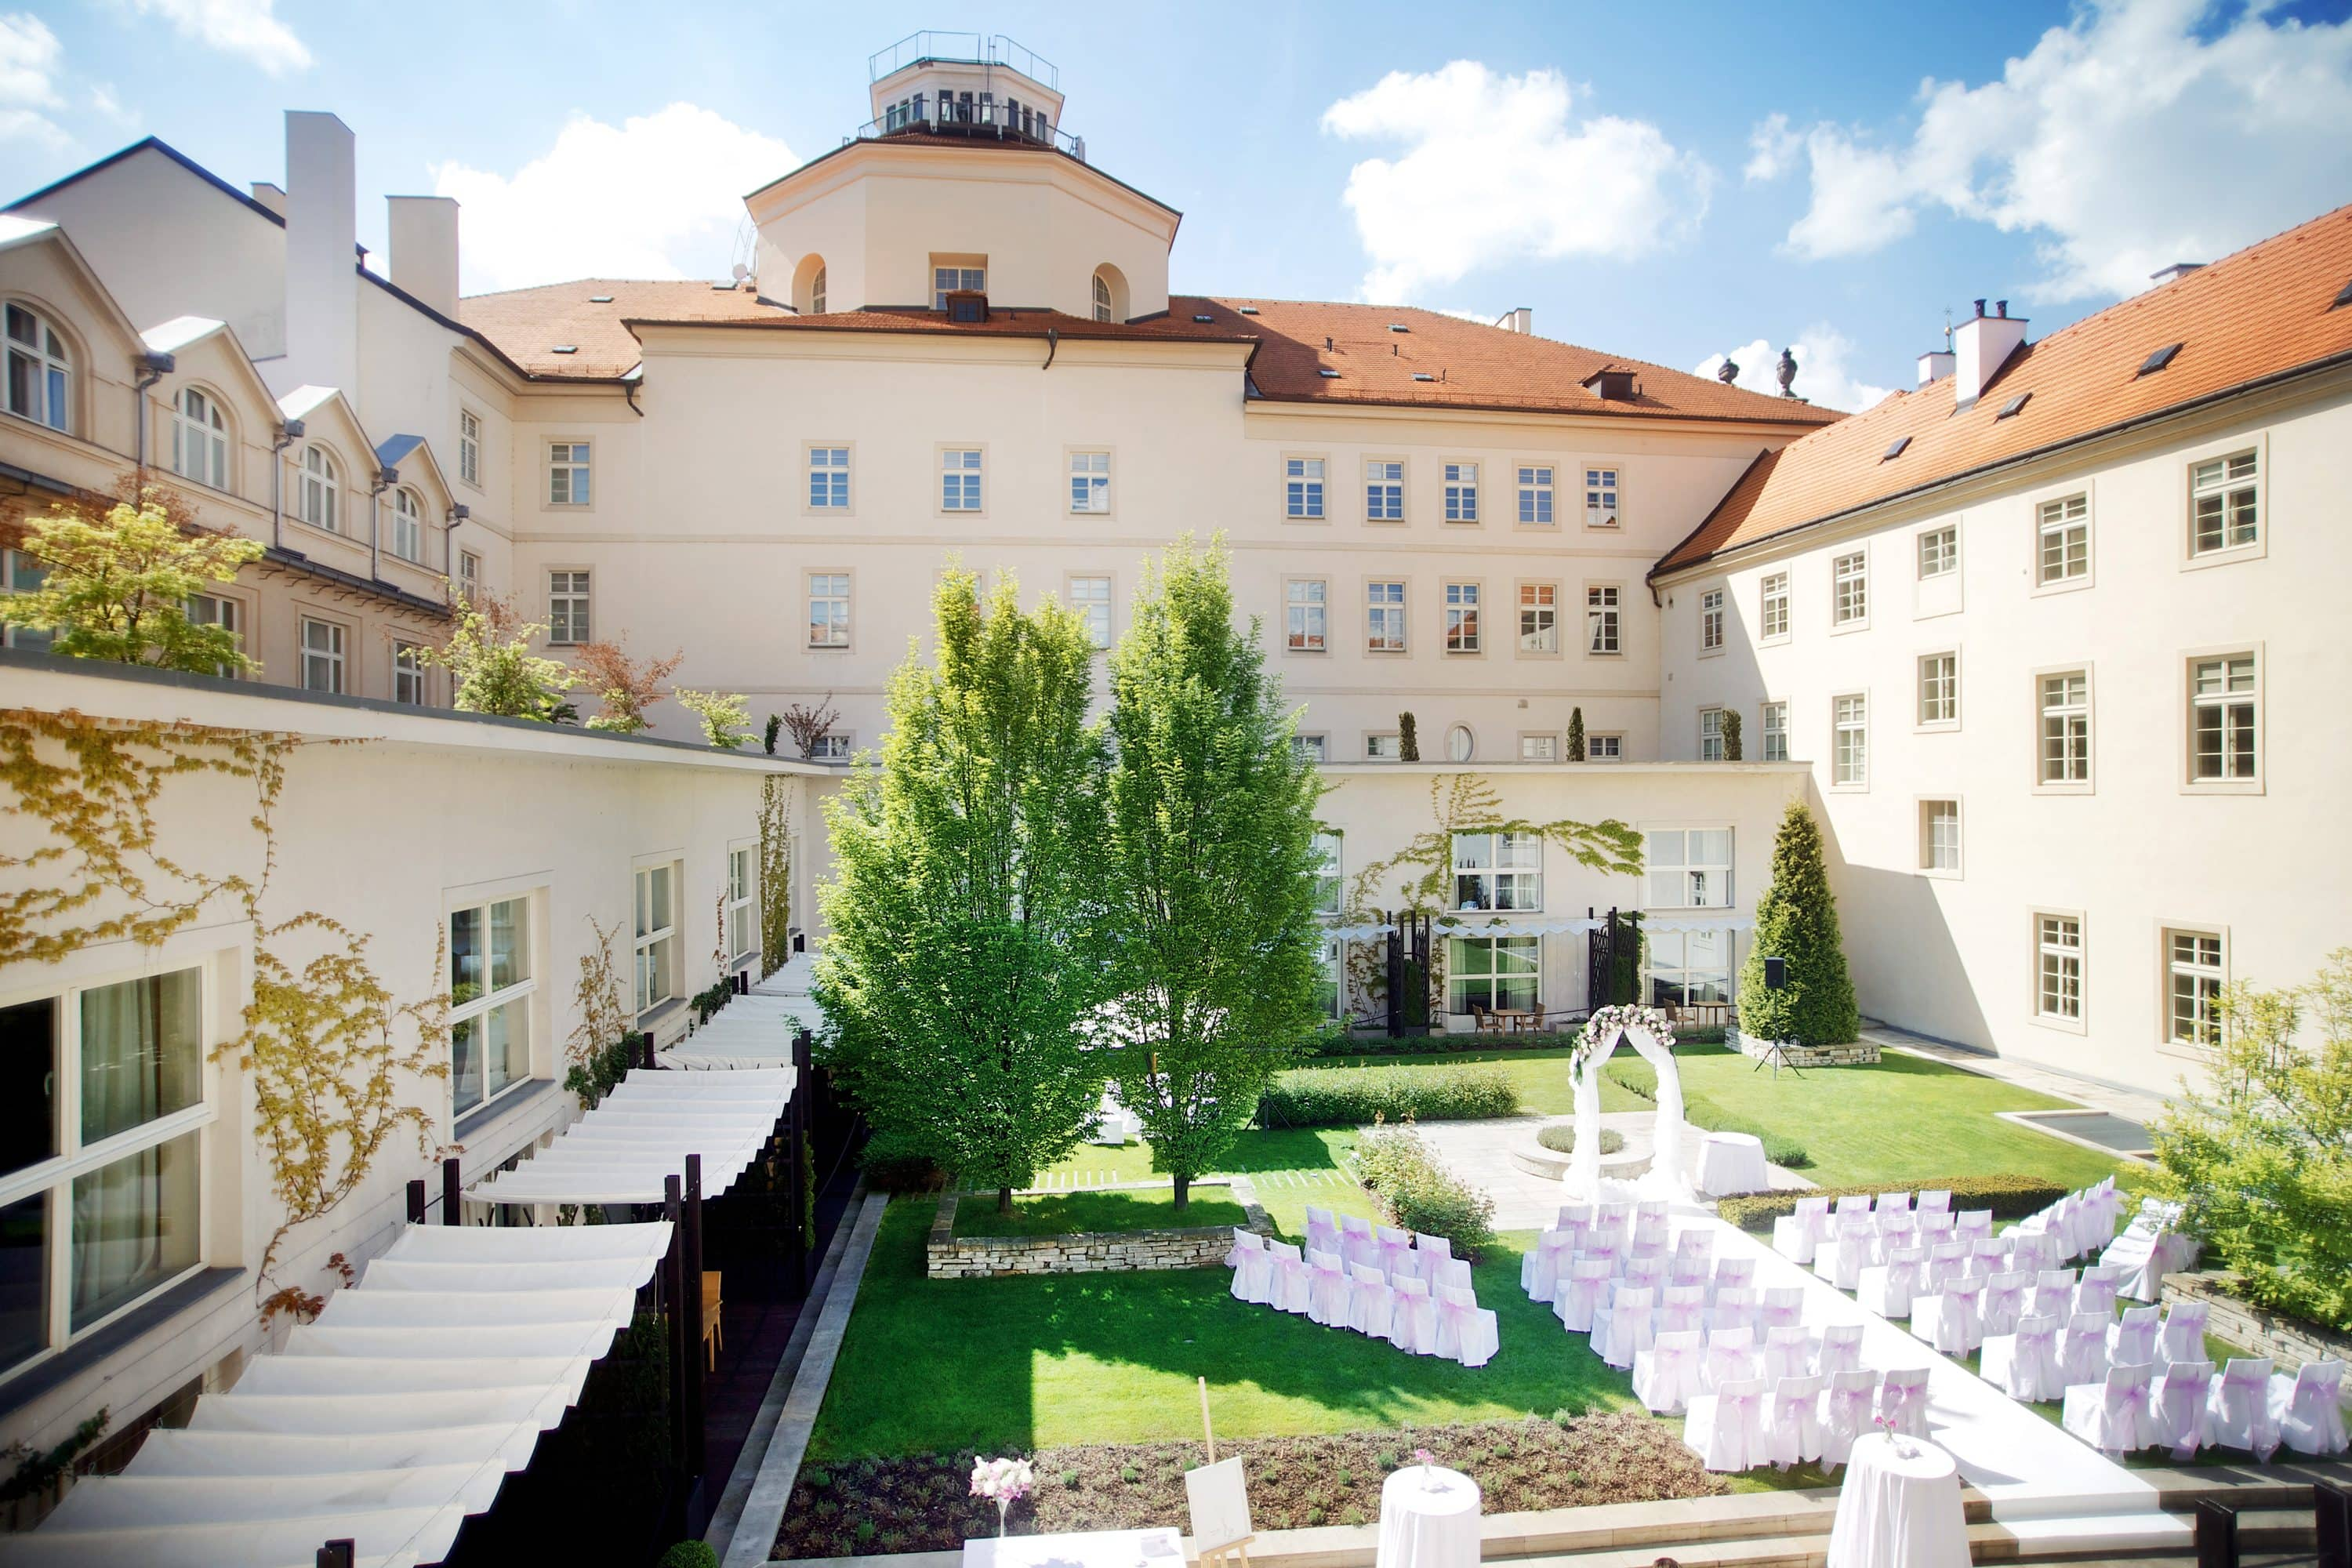 Covered seats set out in courtyard for a wedding at Mandarin Oriental, Prague